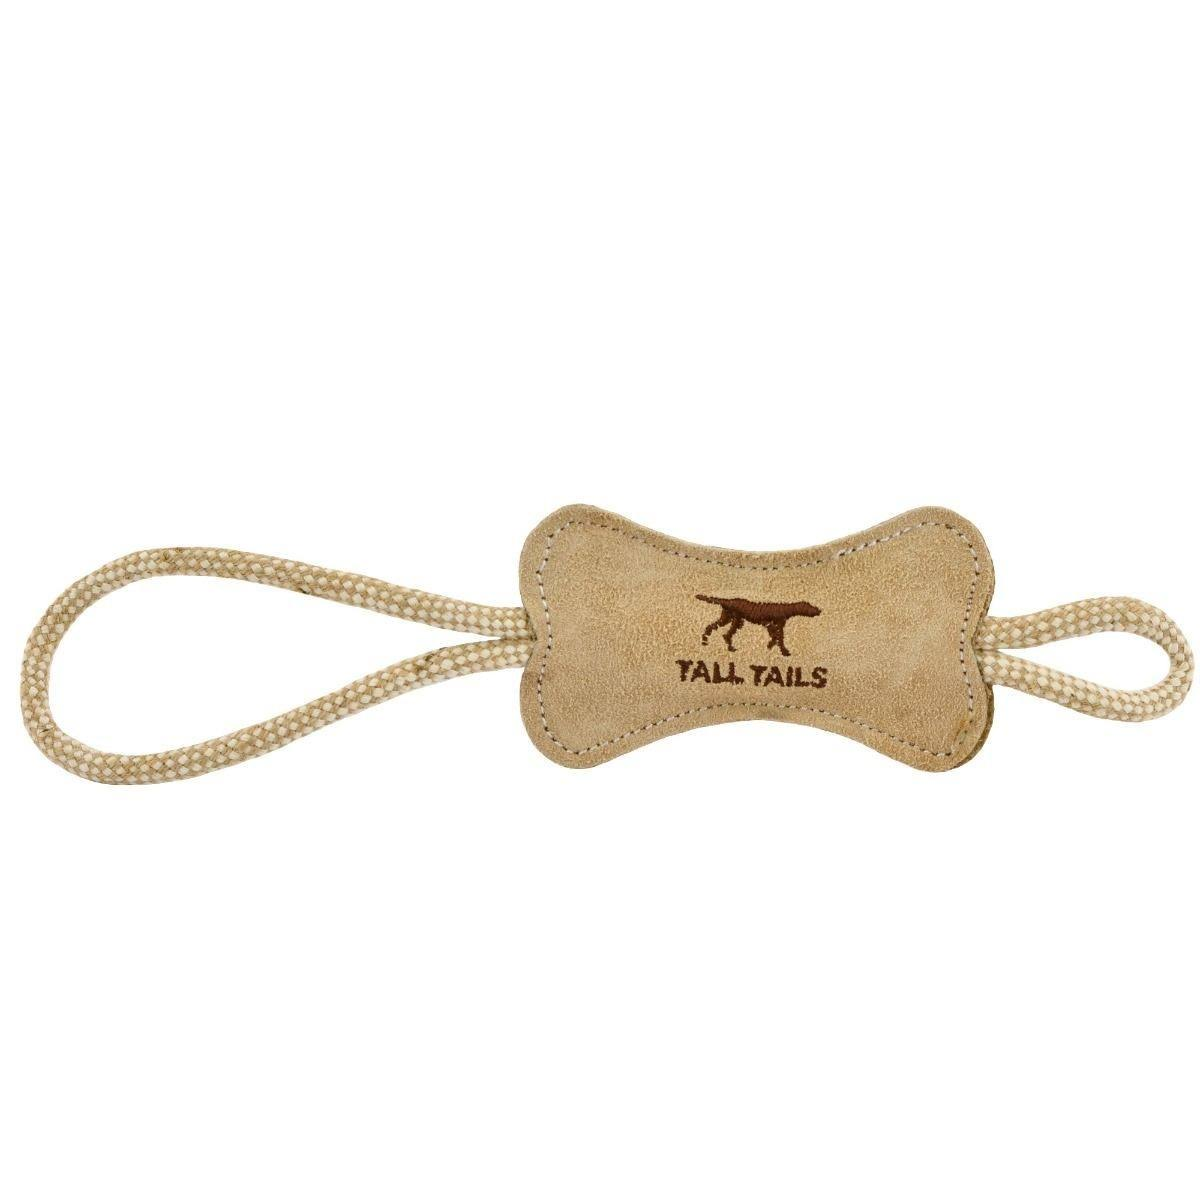 Tall Tails 88215939 Leather Dog Bone Tug Toy Natural - 12 in.